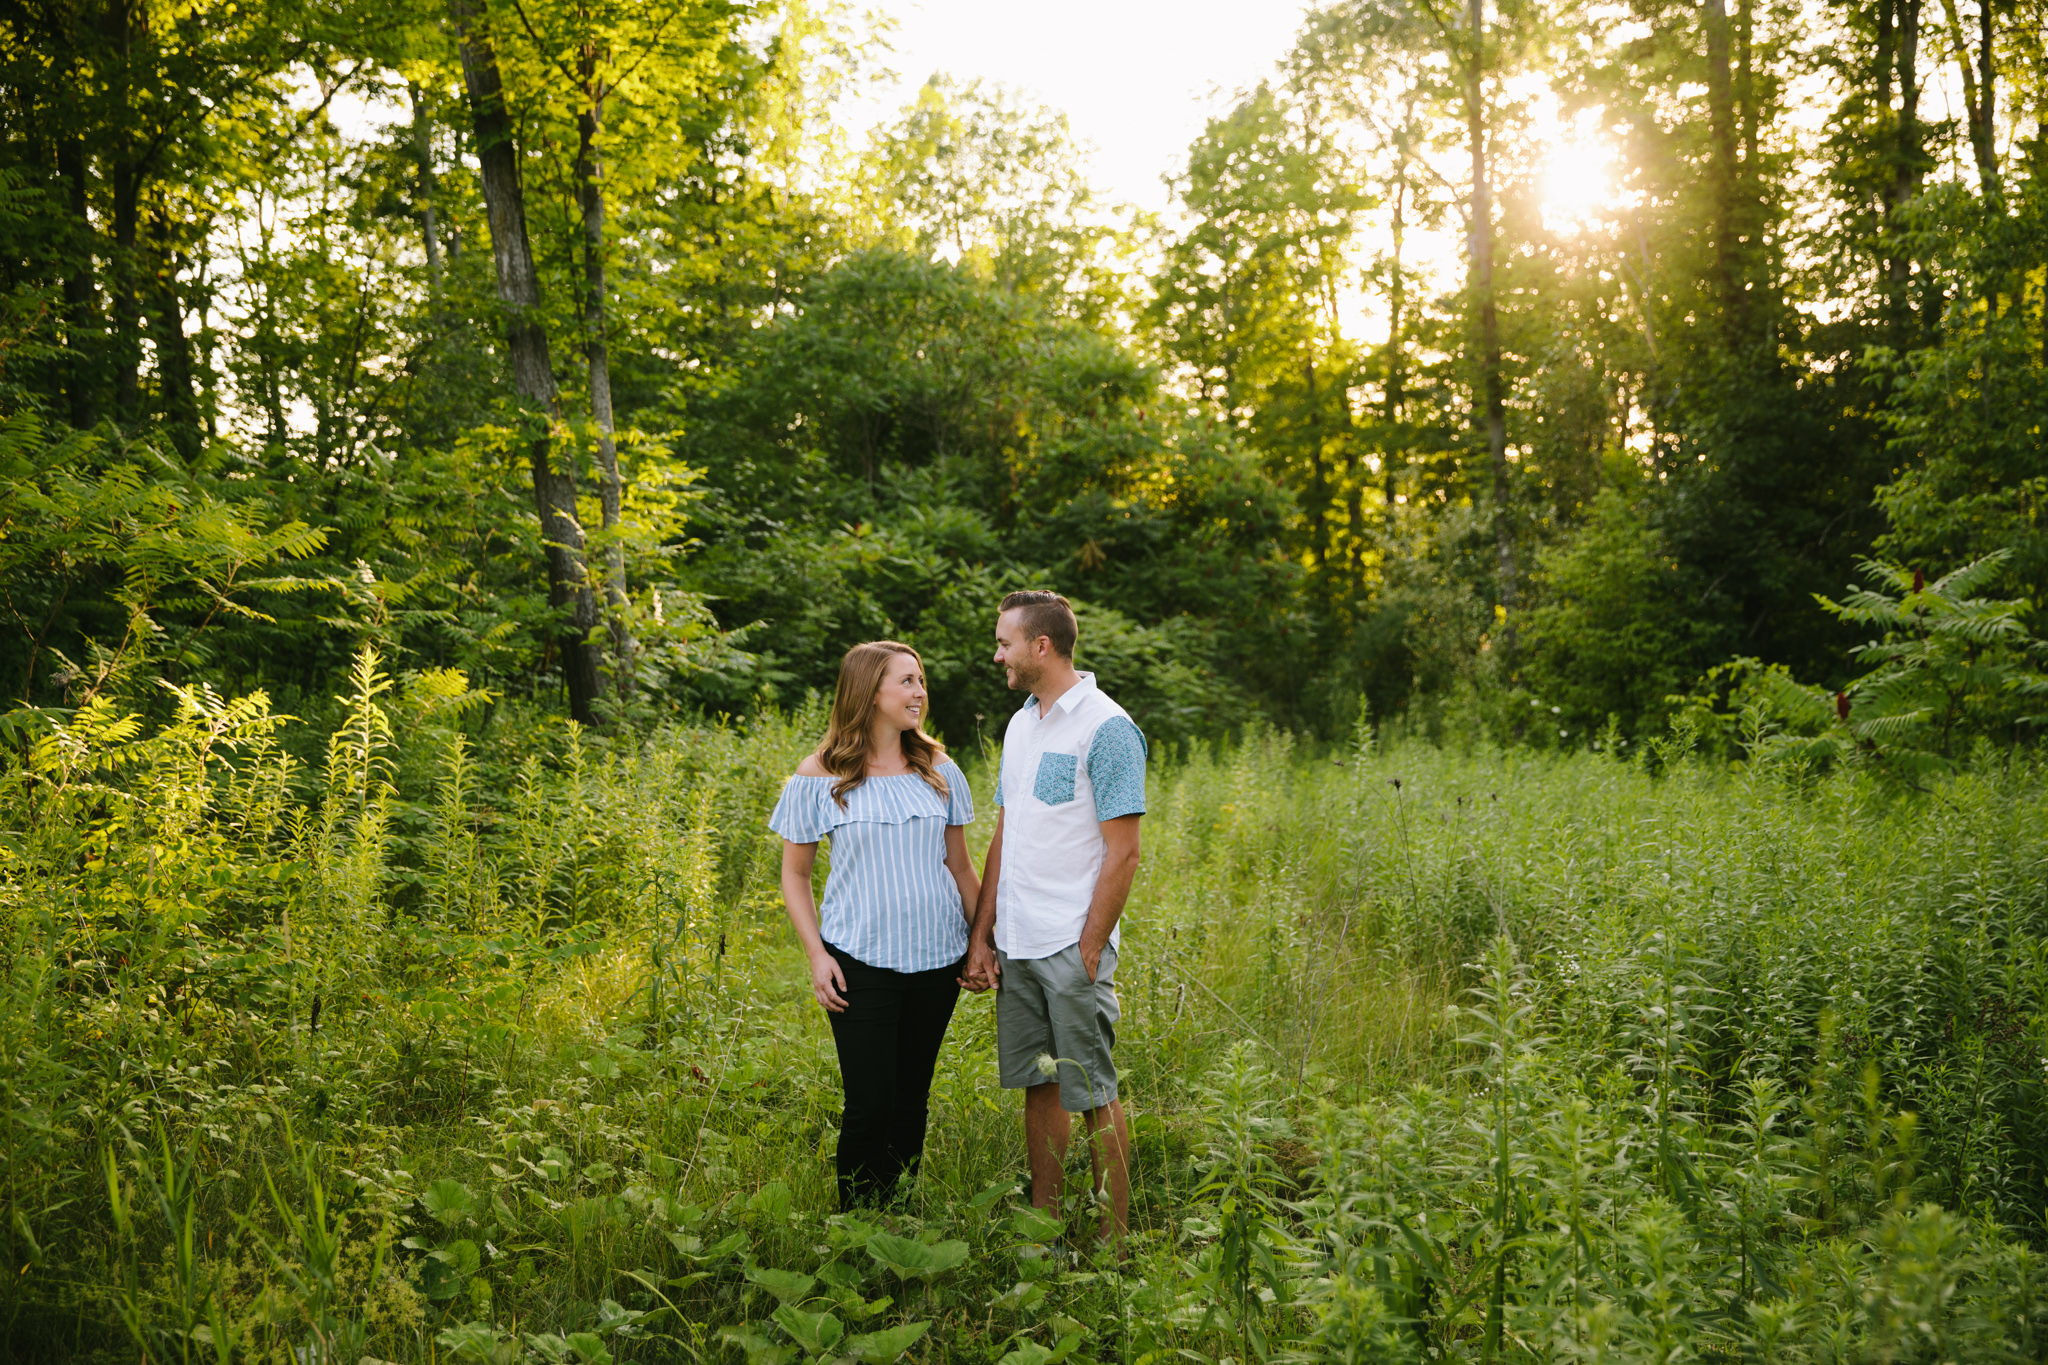 couple photography session with a guy and girl holding hands in a green field at sunset